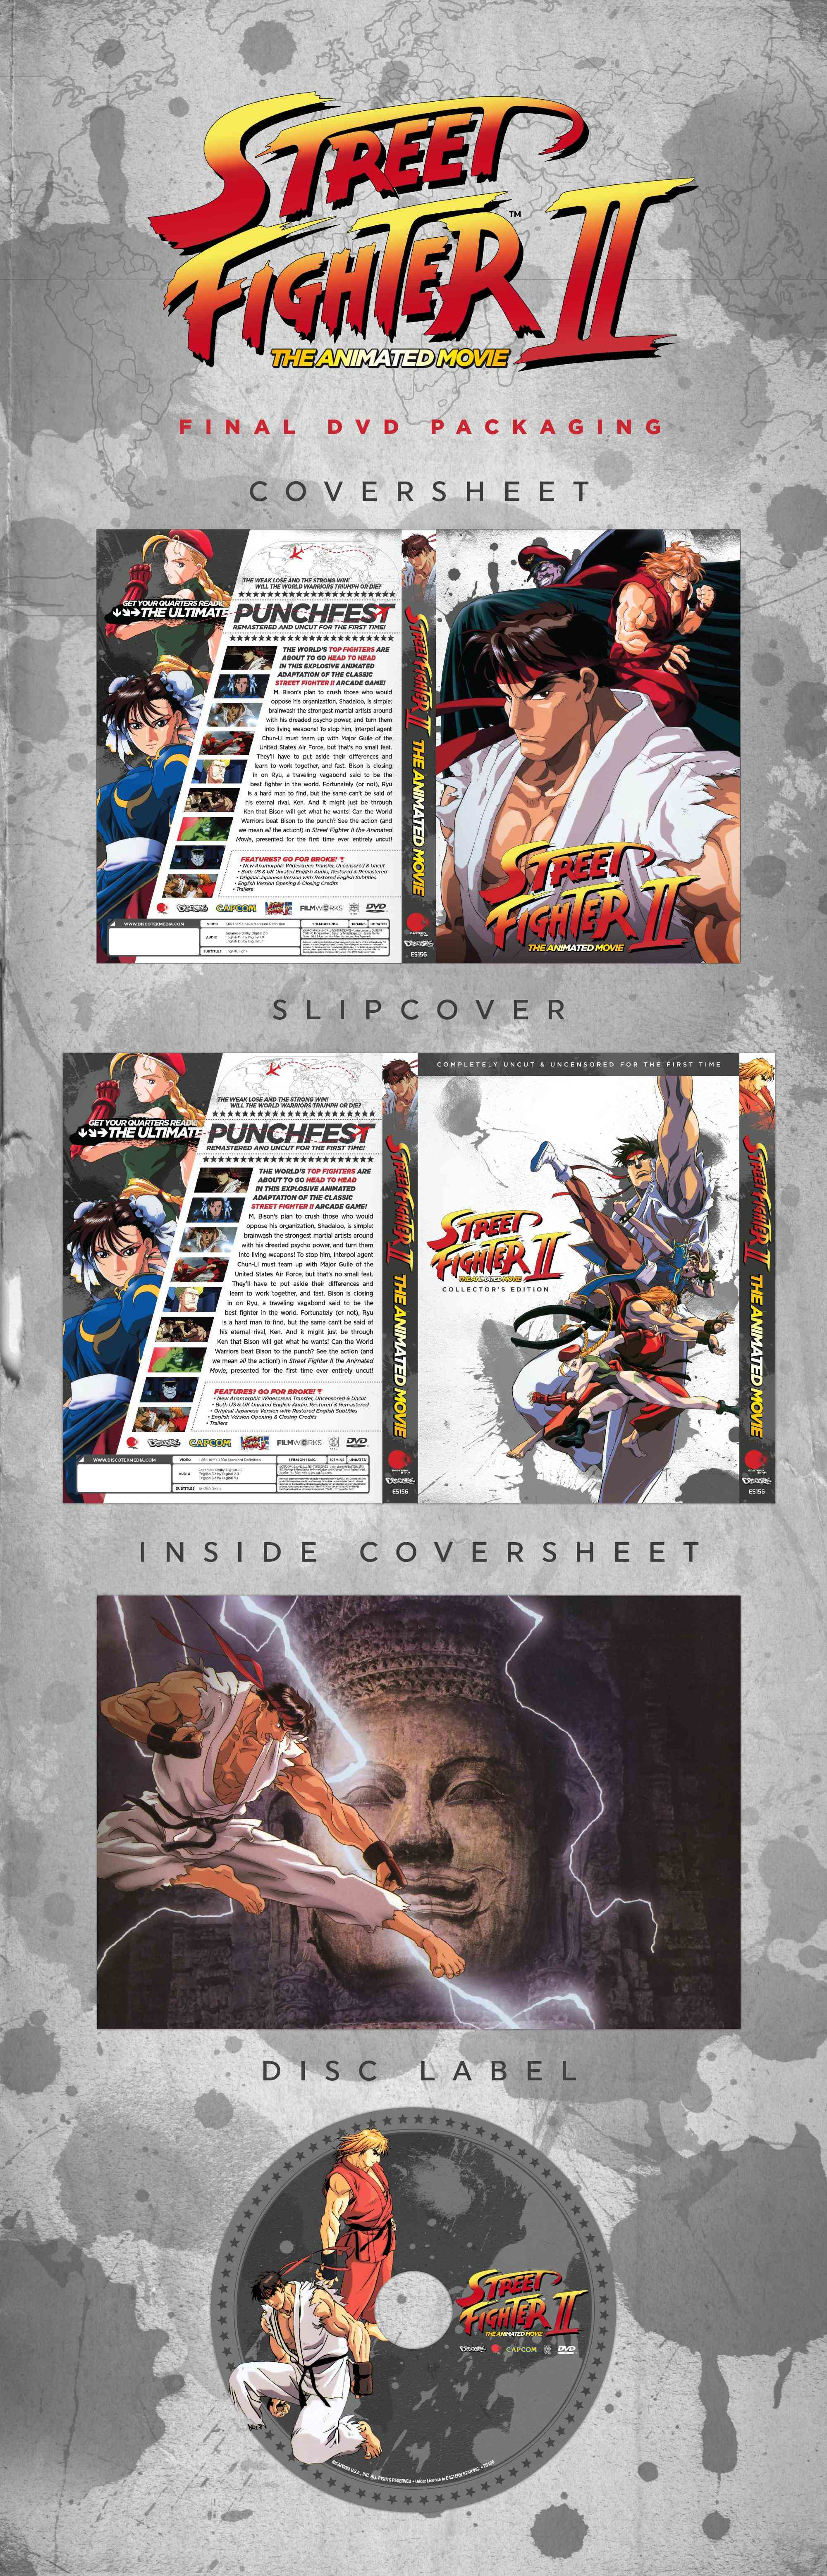 Street-Fighter-II-The-Animated-Movie-DVD-Cover-Art-02